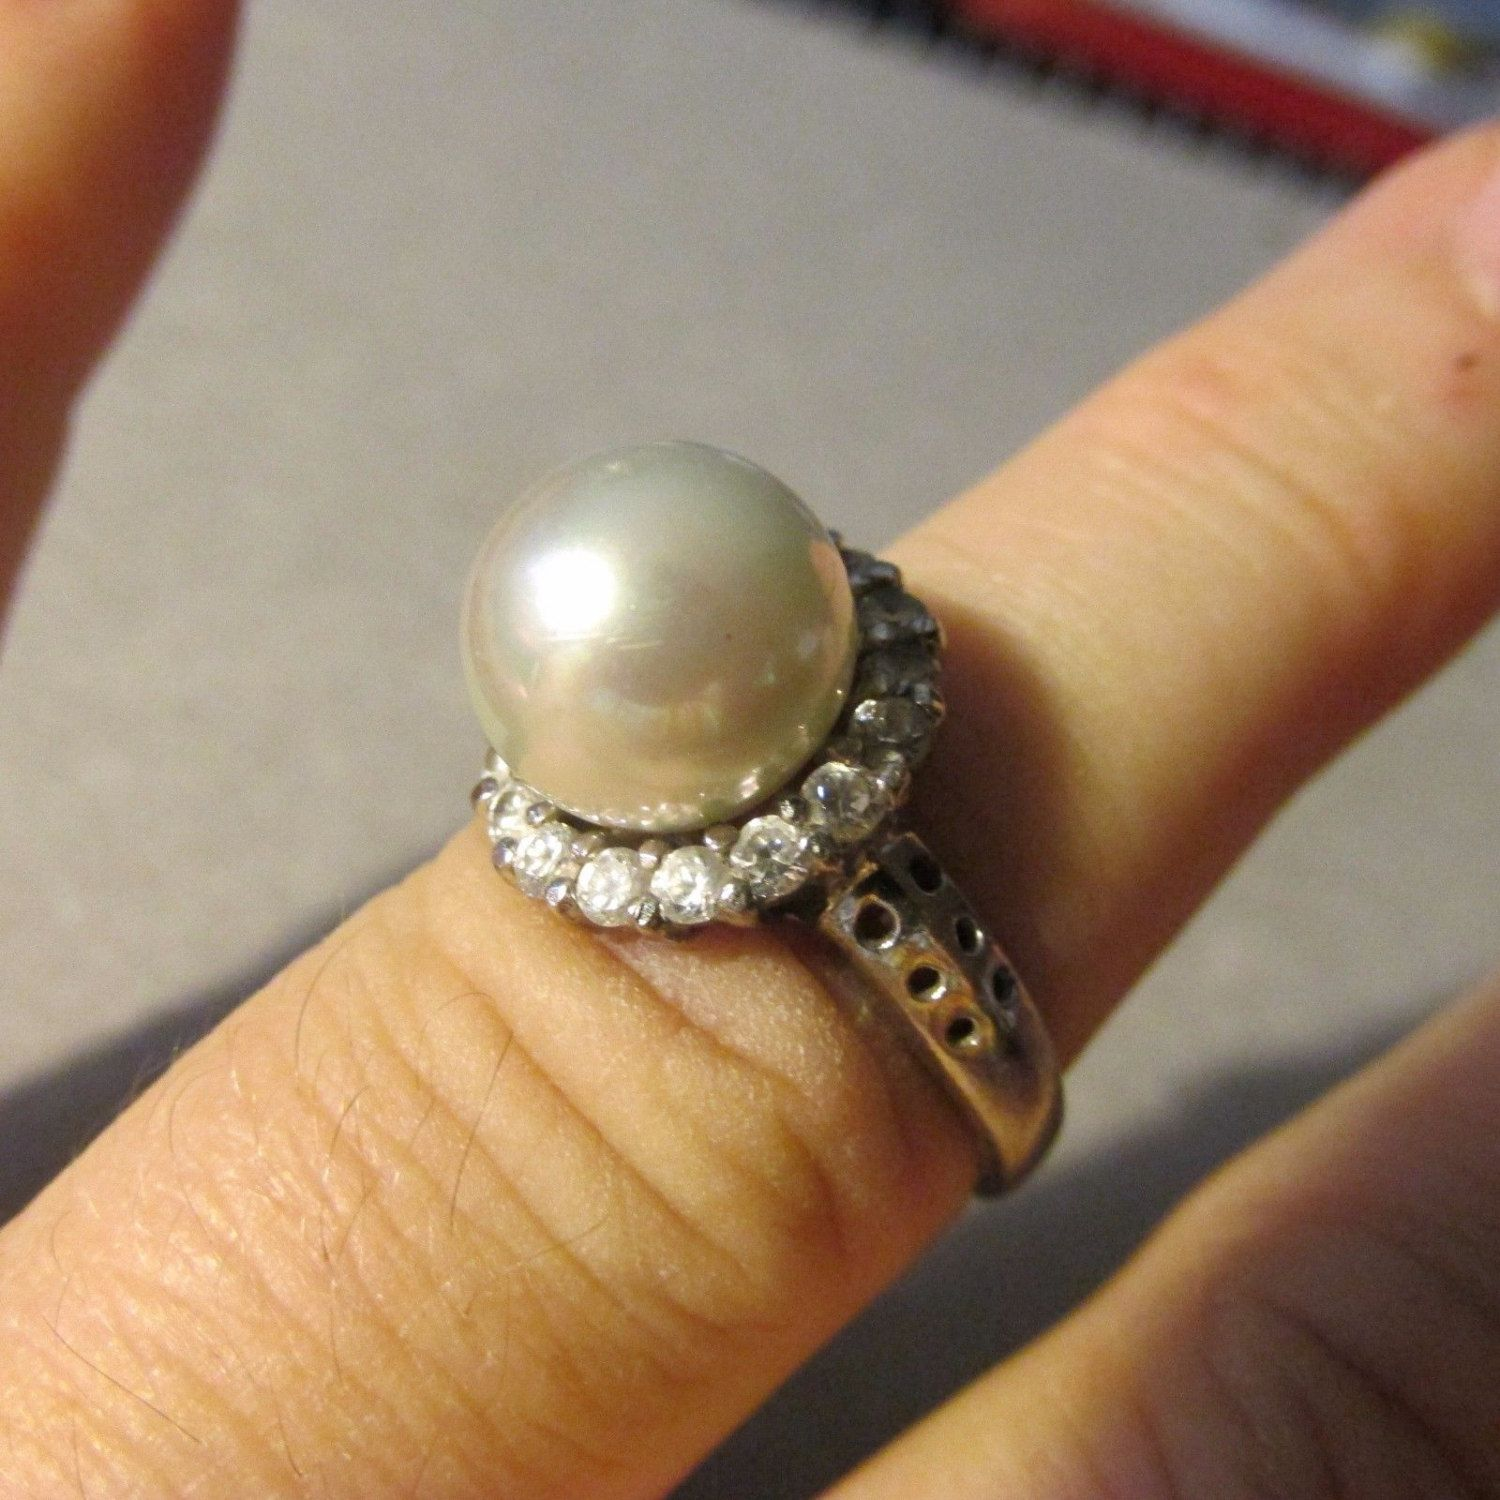 Classic Sterling Pearl RING Solitaire with CZ Accents Size 8 Marked 925 Vintage Anniversary Wedding June Birthstone Ladies Gift by GrammiesCupboard on Etsy